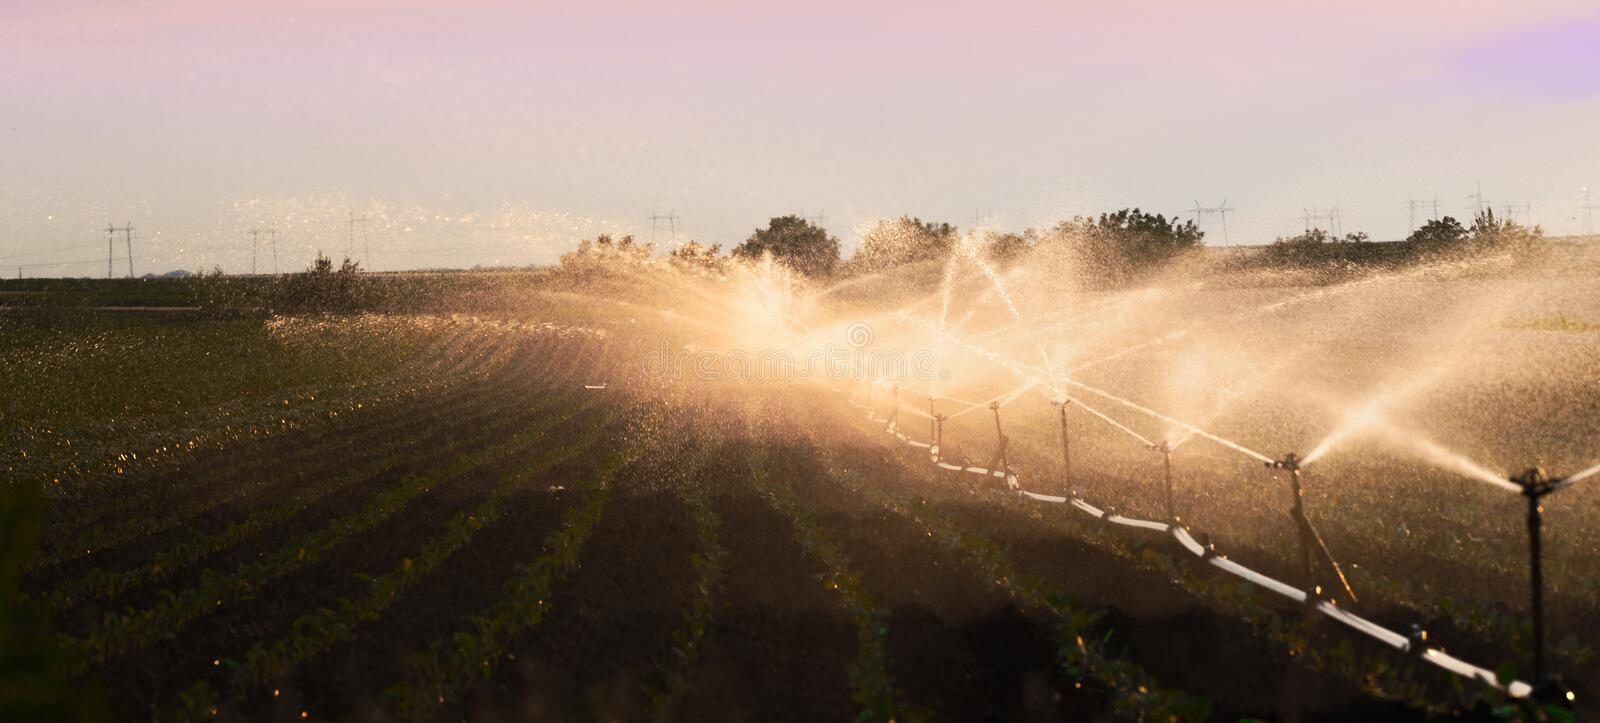 Irrigation system watering a crop of soy beans royalty free stock image